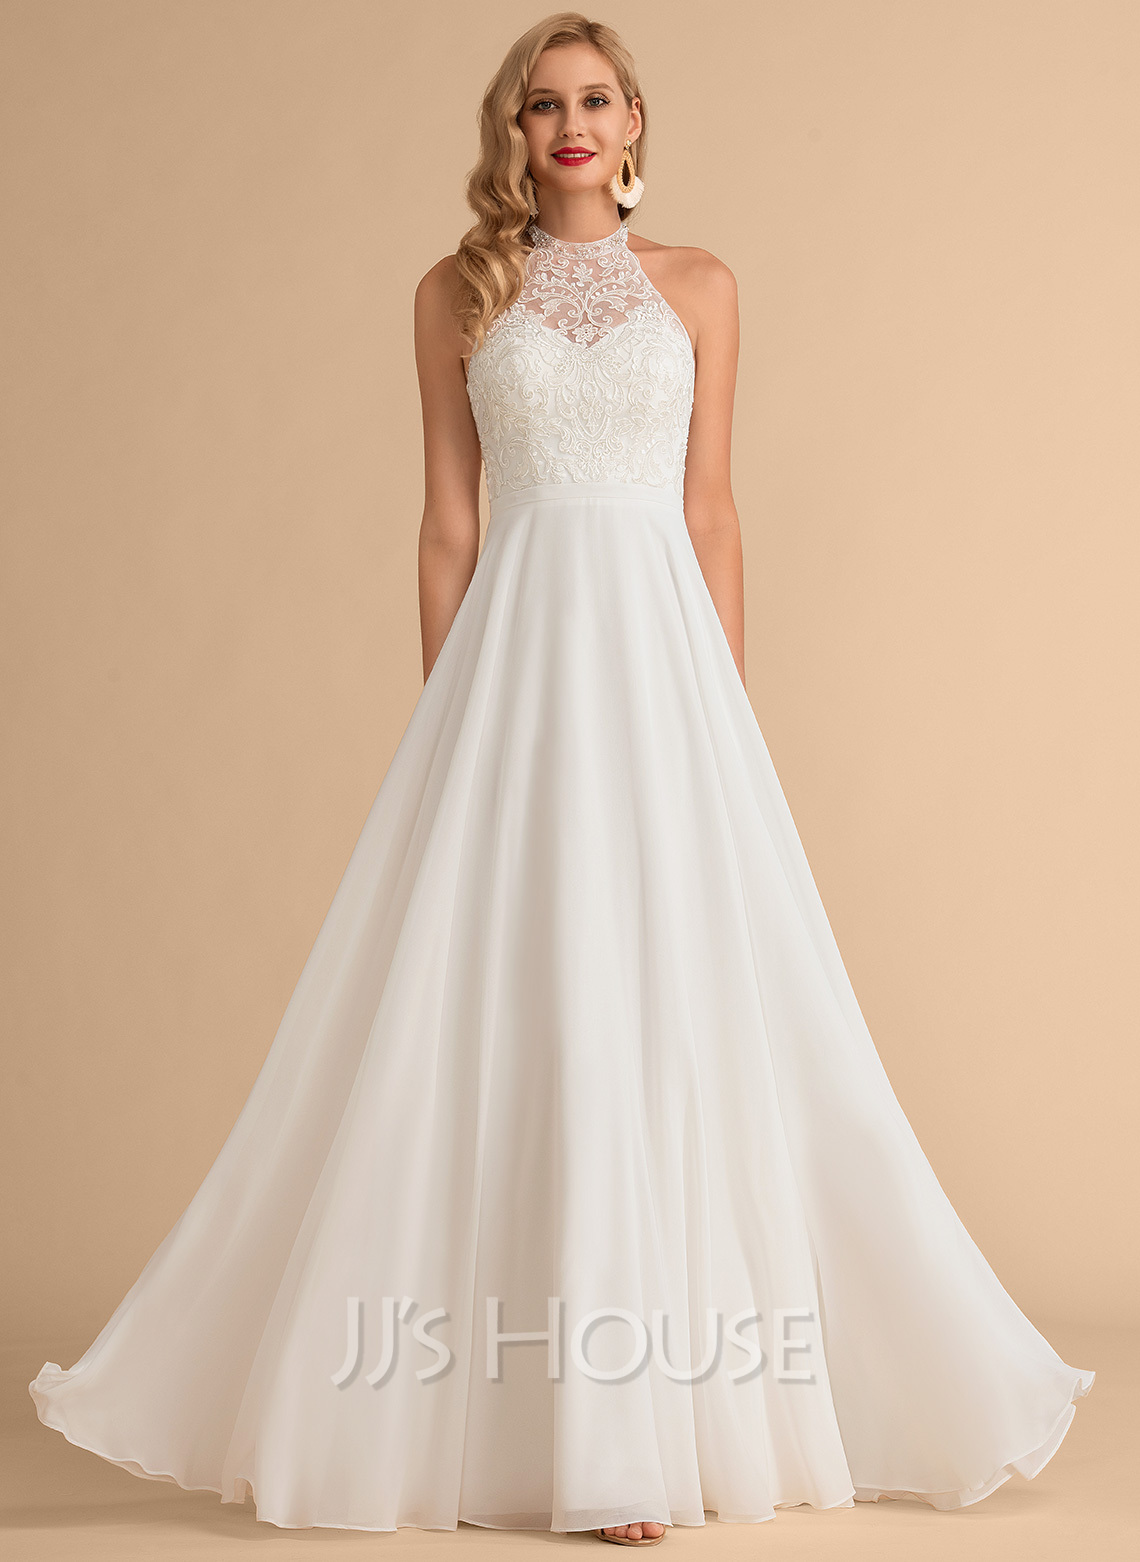 A-Line High Neck Floor-Length Chiffon Wedding Dress